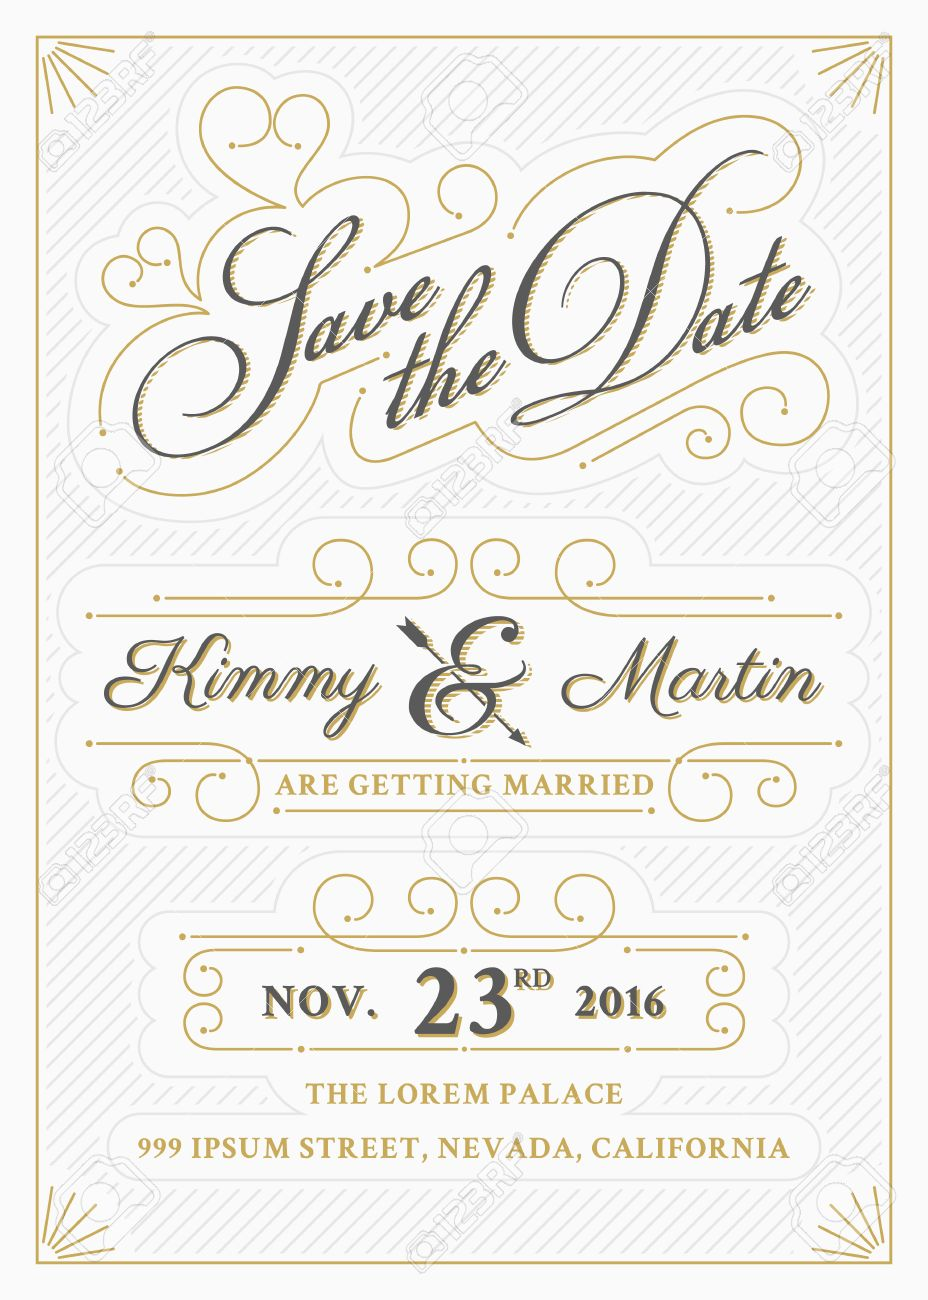 Vintage Save The Date Card Letterpress Style Design. Very Easy ...